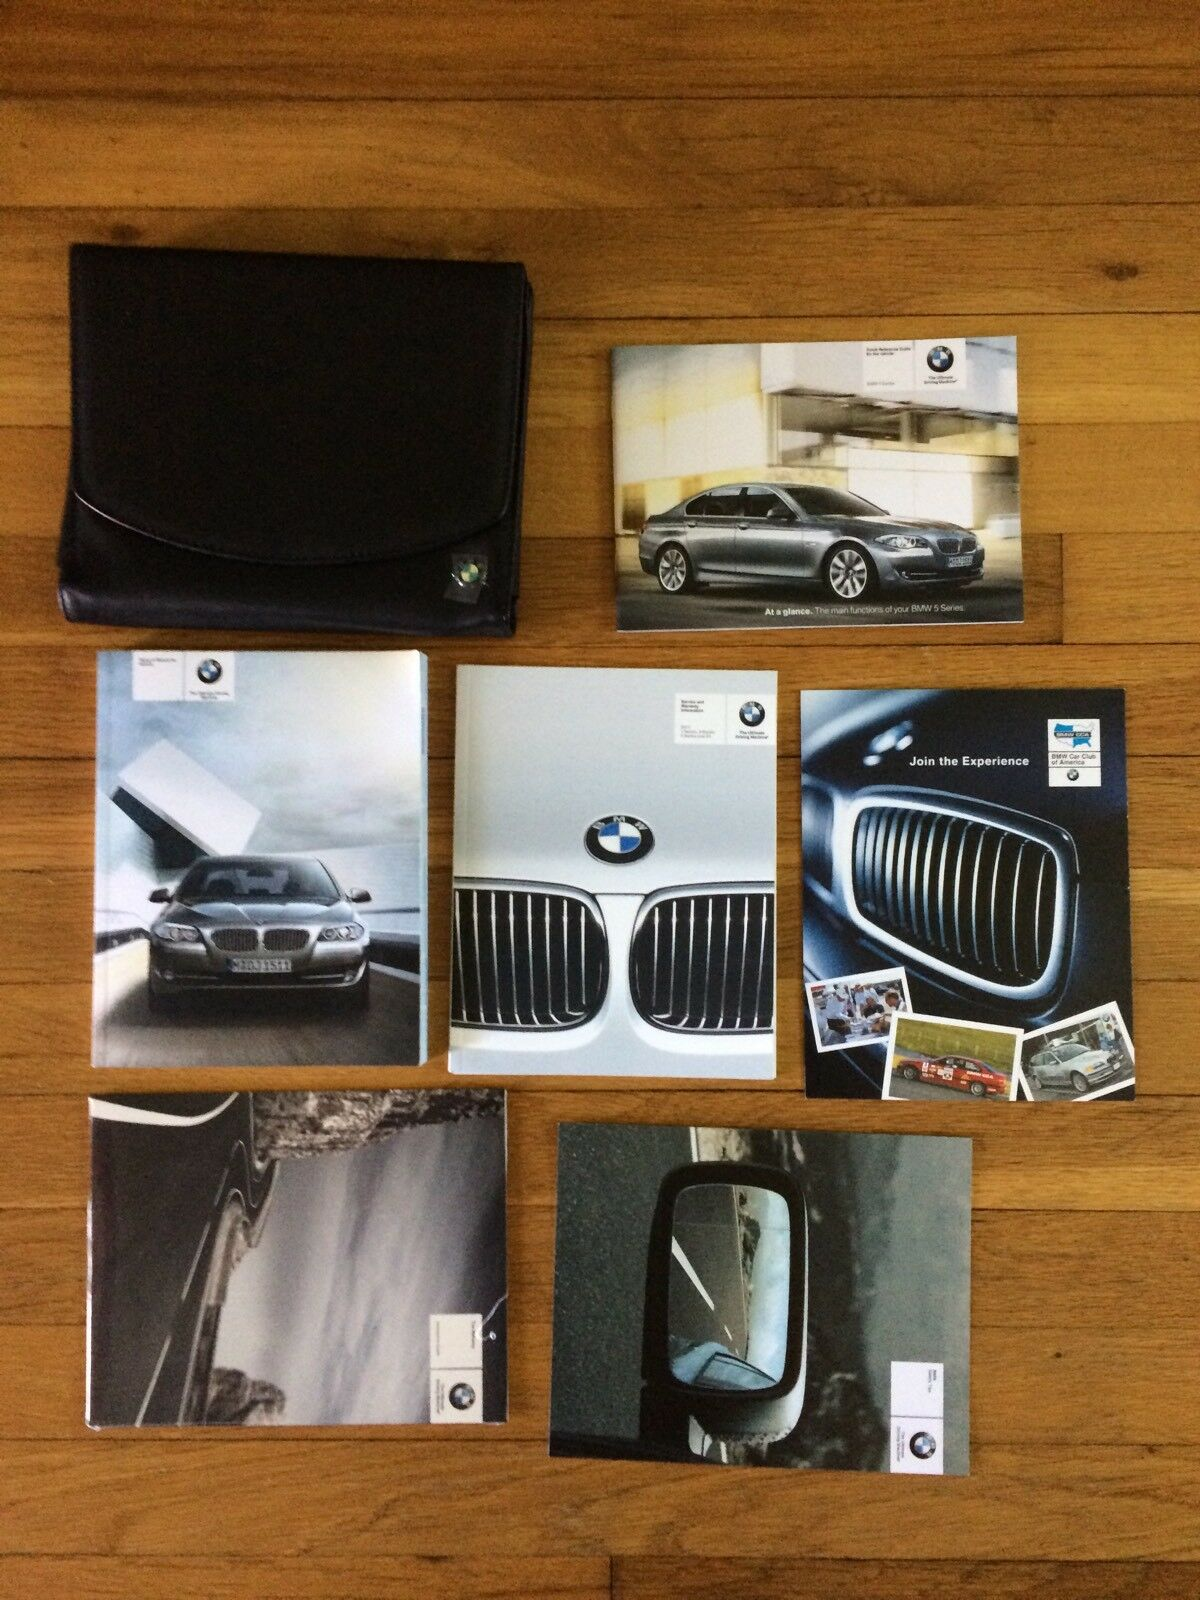 2011 bmw 5 series owners manual and navigation and case [ 1200 x 1600 Pixel ]